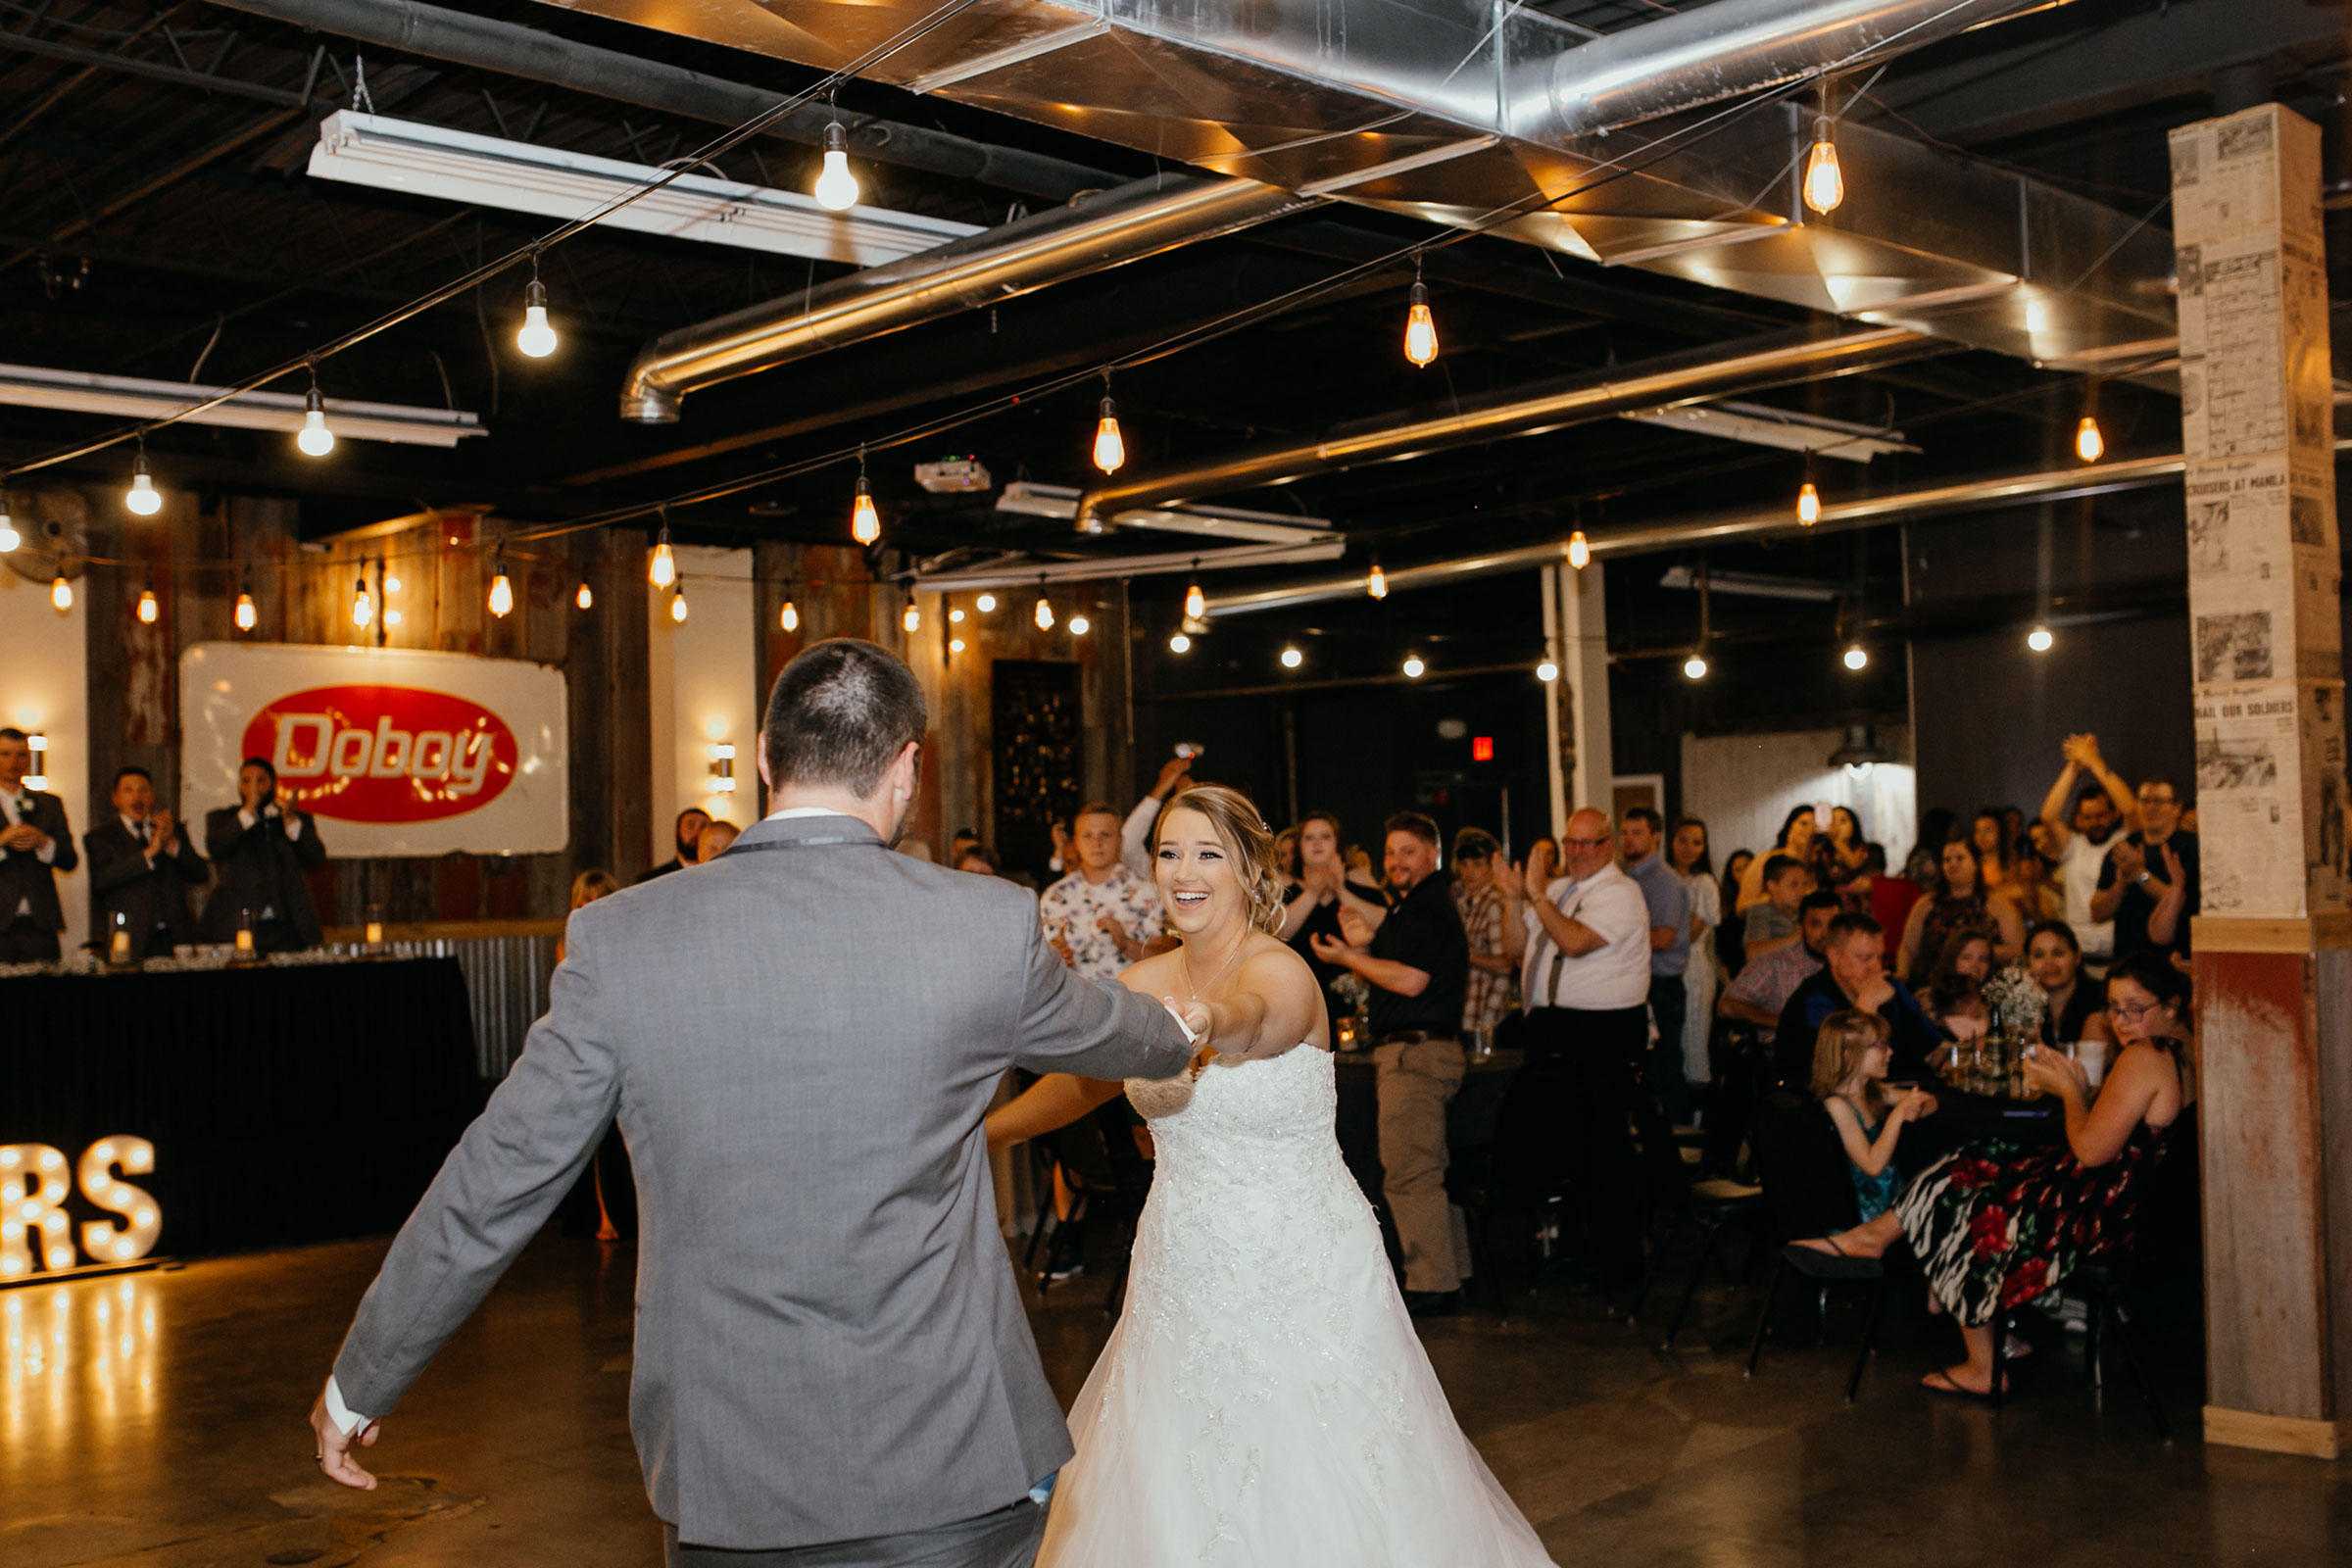 bride-and-groom-enterance-decades-event-center-building-desmoines-iowa-raelyn-ramey-photography..jpg